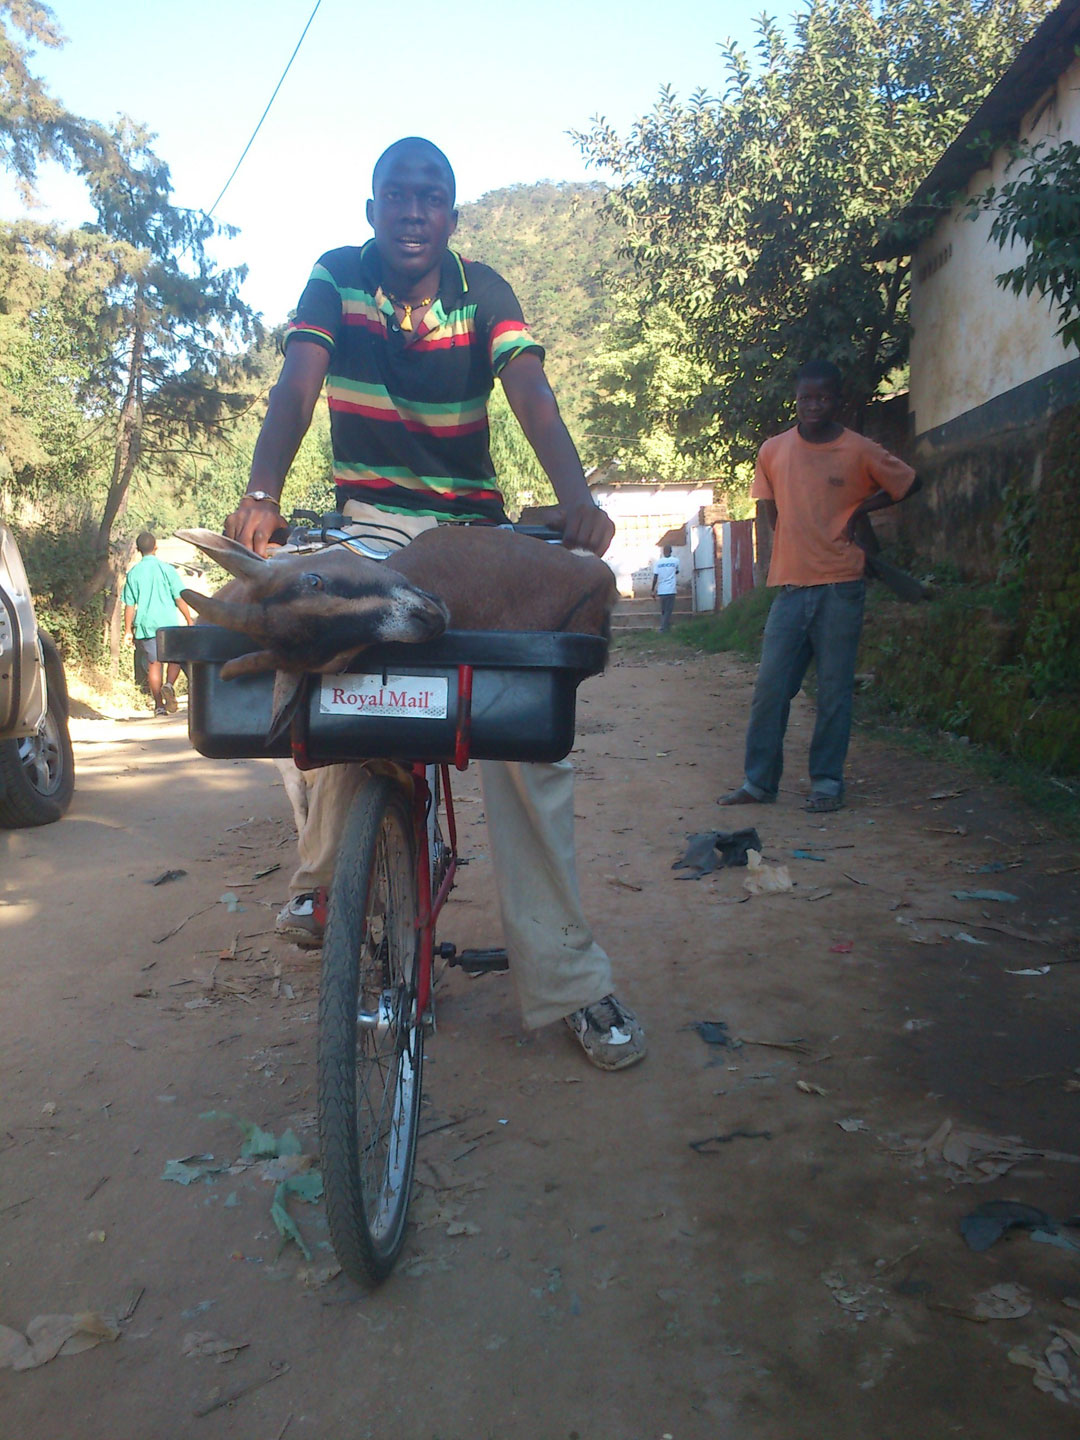 Using refurbished Royal Mail bikes for unique purposes in Malawi.